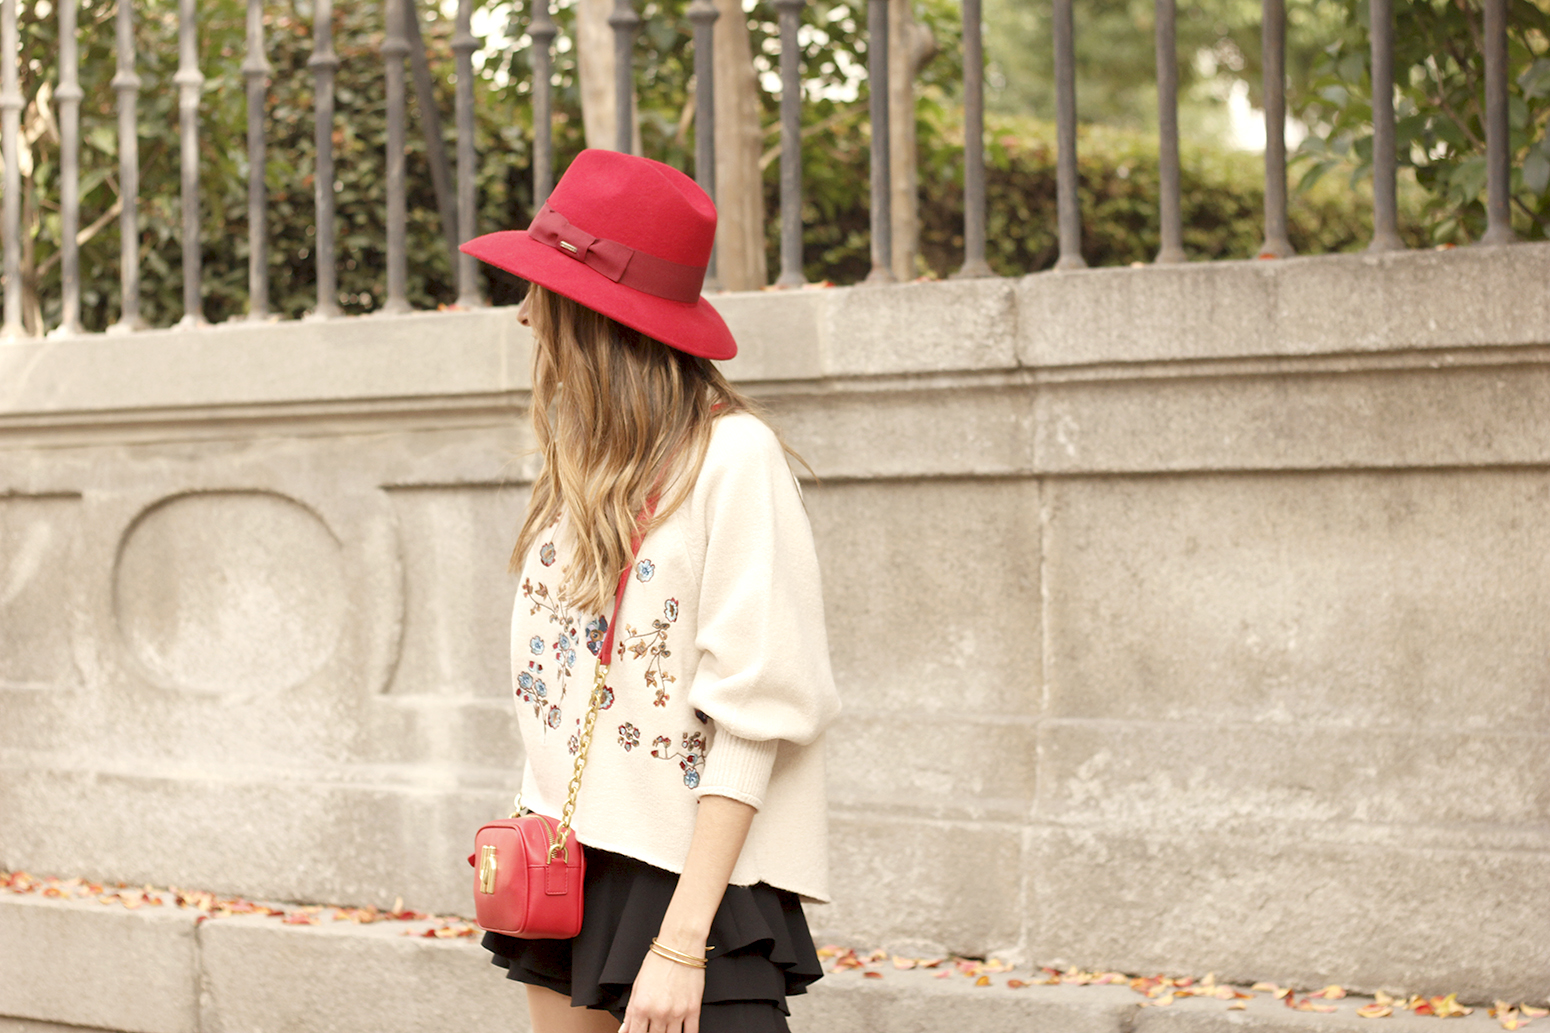 beige jersey with embroidered flowers over the knee black boots red hat street style fashion inspiration outfit13